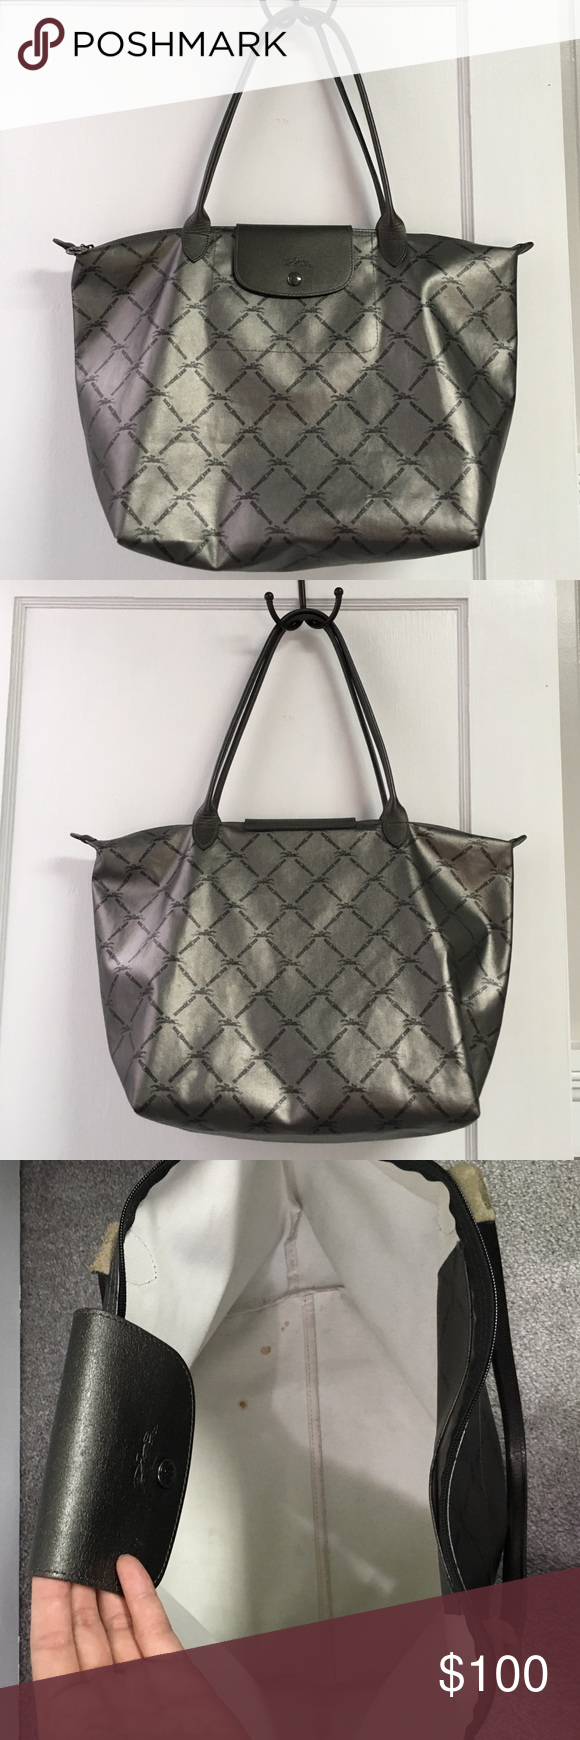 ✨1 Day Sale✨Authentic Large Longchamp Authentic large metallic gray Longchamp. This bag has been gently carried over the years & is still in great condition. The corners only show slight wear & the subtle reflectiveness of the bag conceals wear on the outside well (which is minimal anyway). There are a few coffee marks on the interior, but aside from that it's clean & has been well cared for. Pls note this style does not fold up but is still soft & moldable & extra lightweight- making…